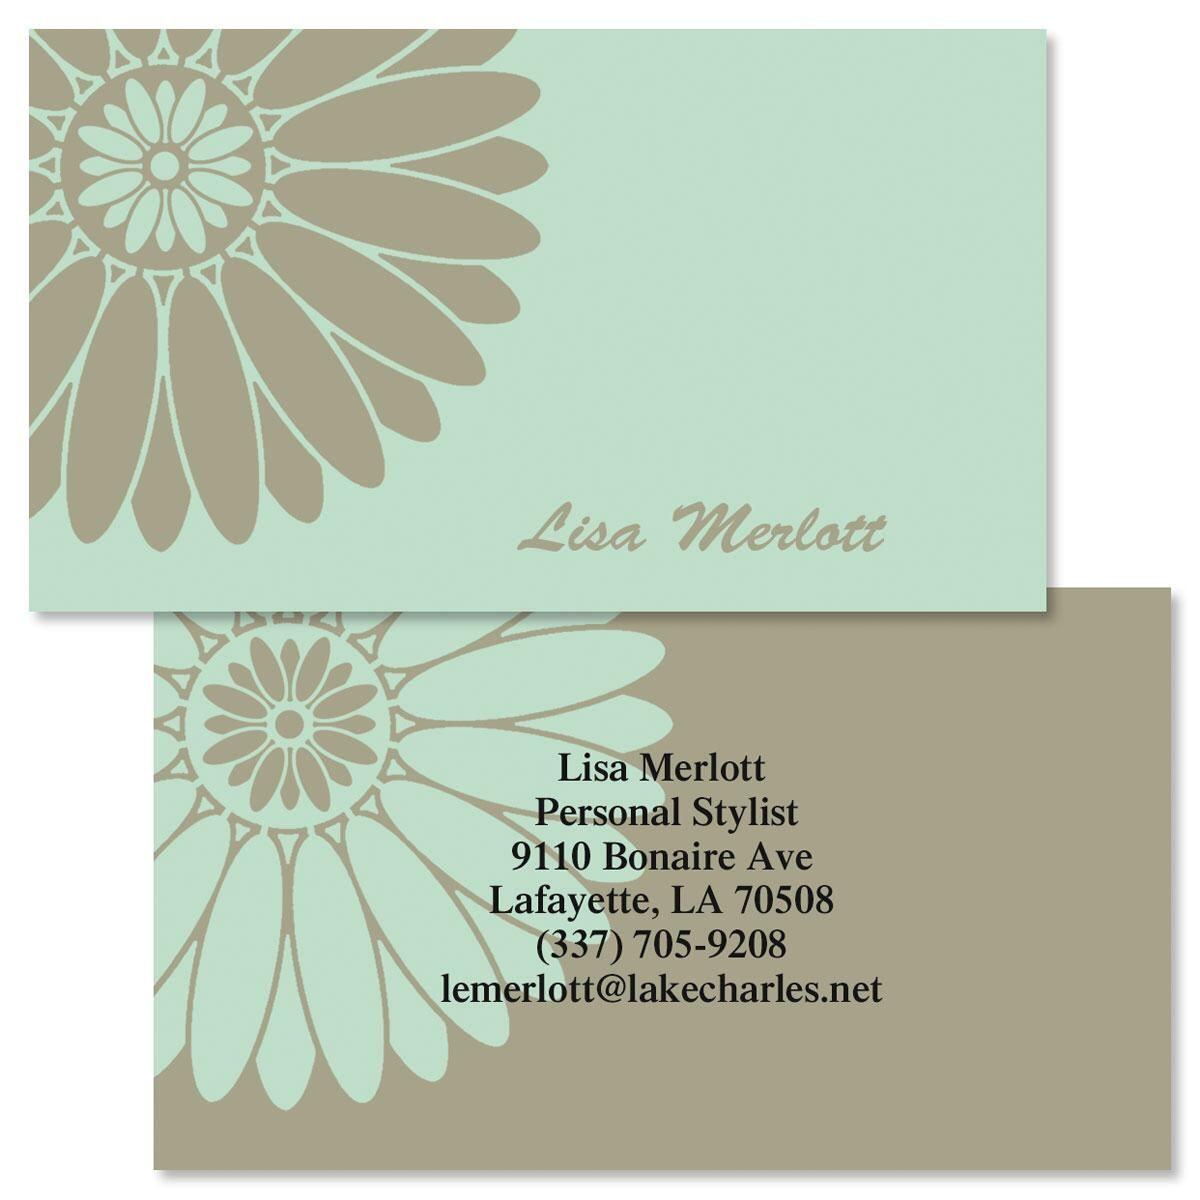 Serene Two-Sided Calling Cards